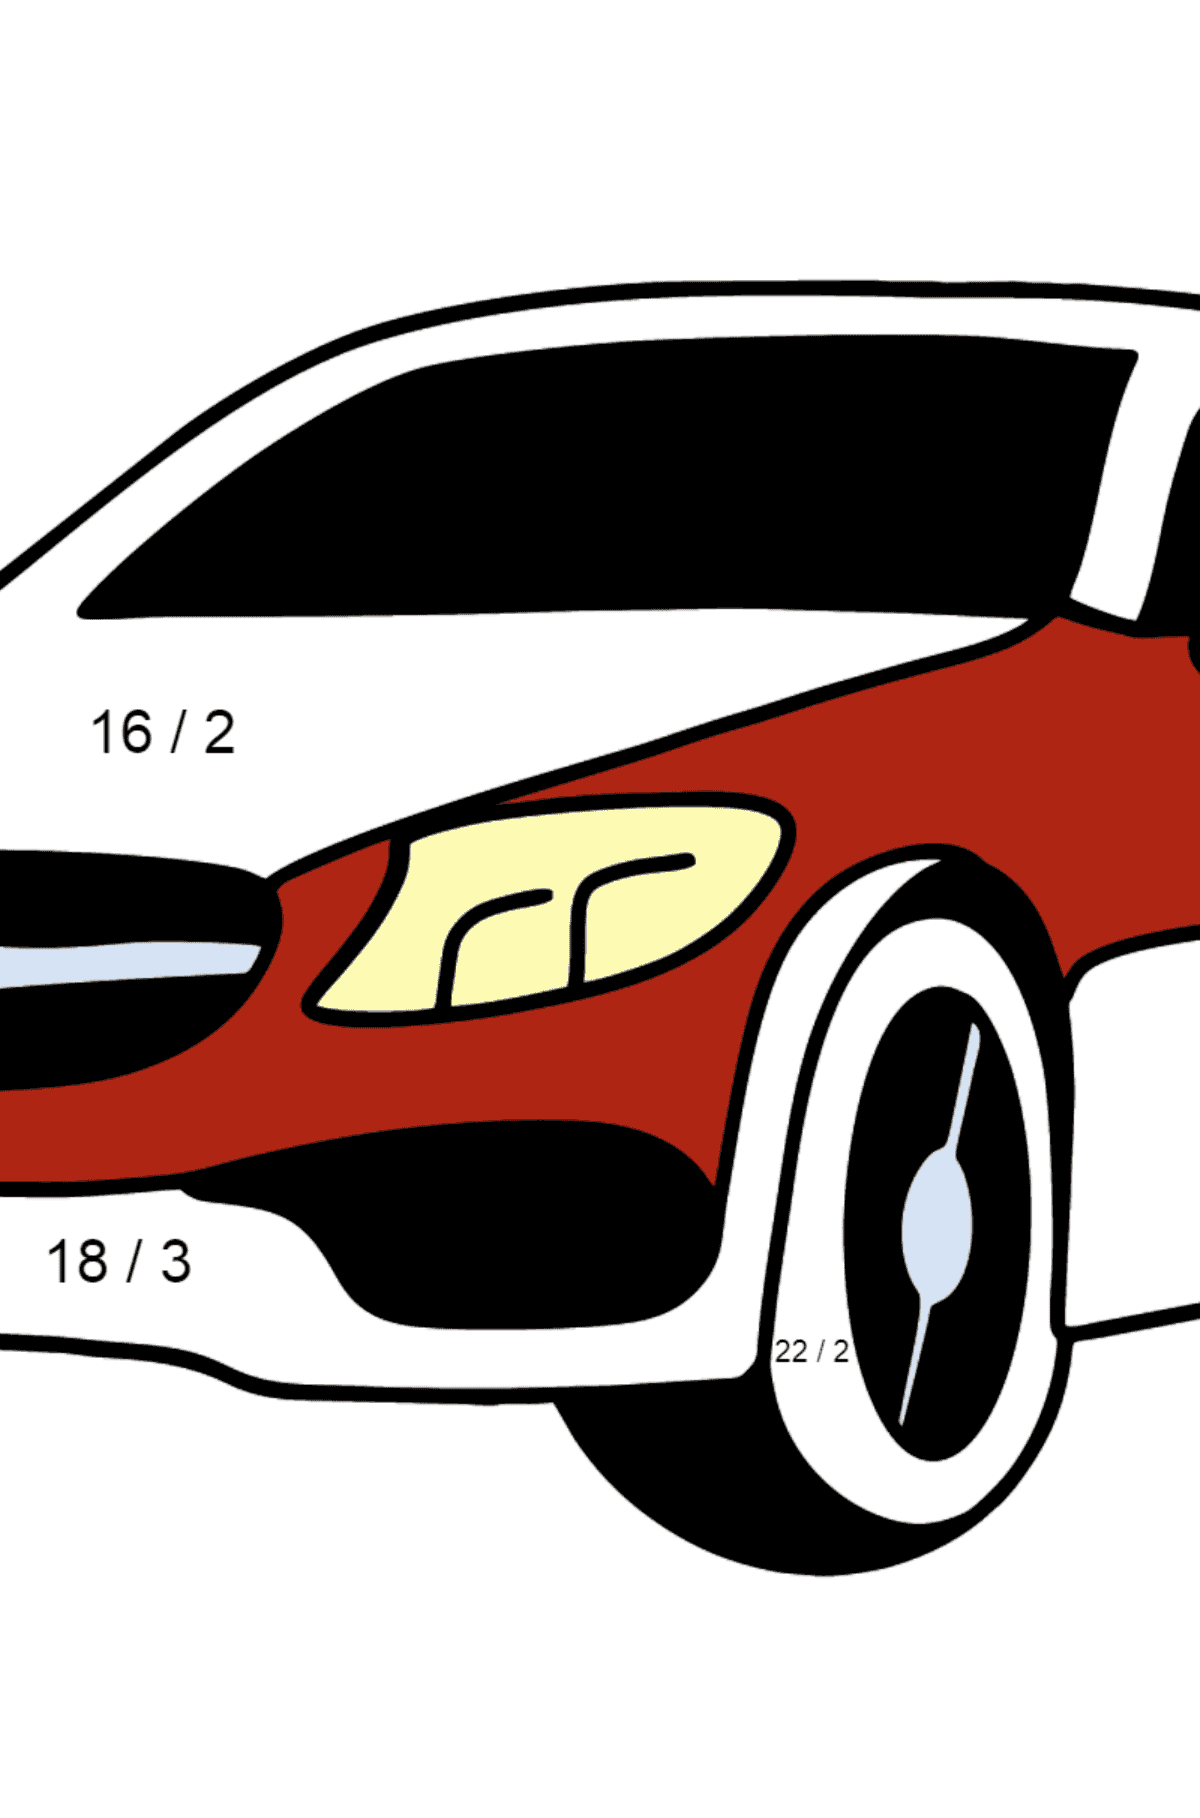 Mercedes C63 AMG car coloring page - Math Coloring - Division for Kids